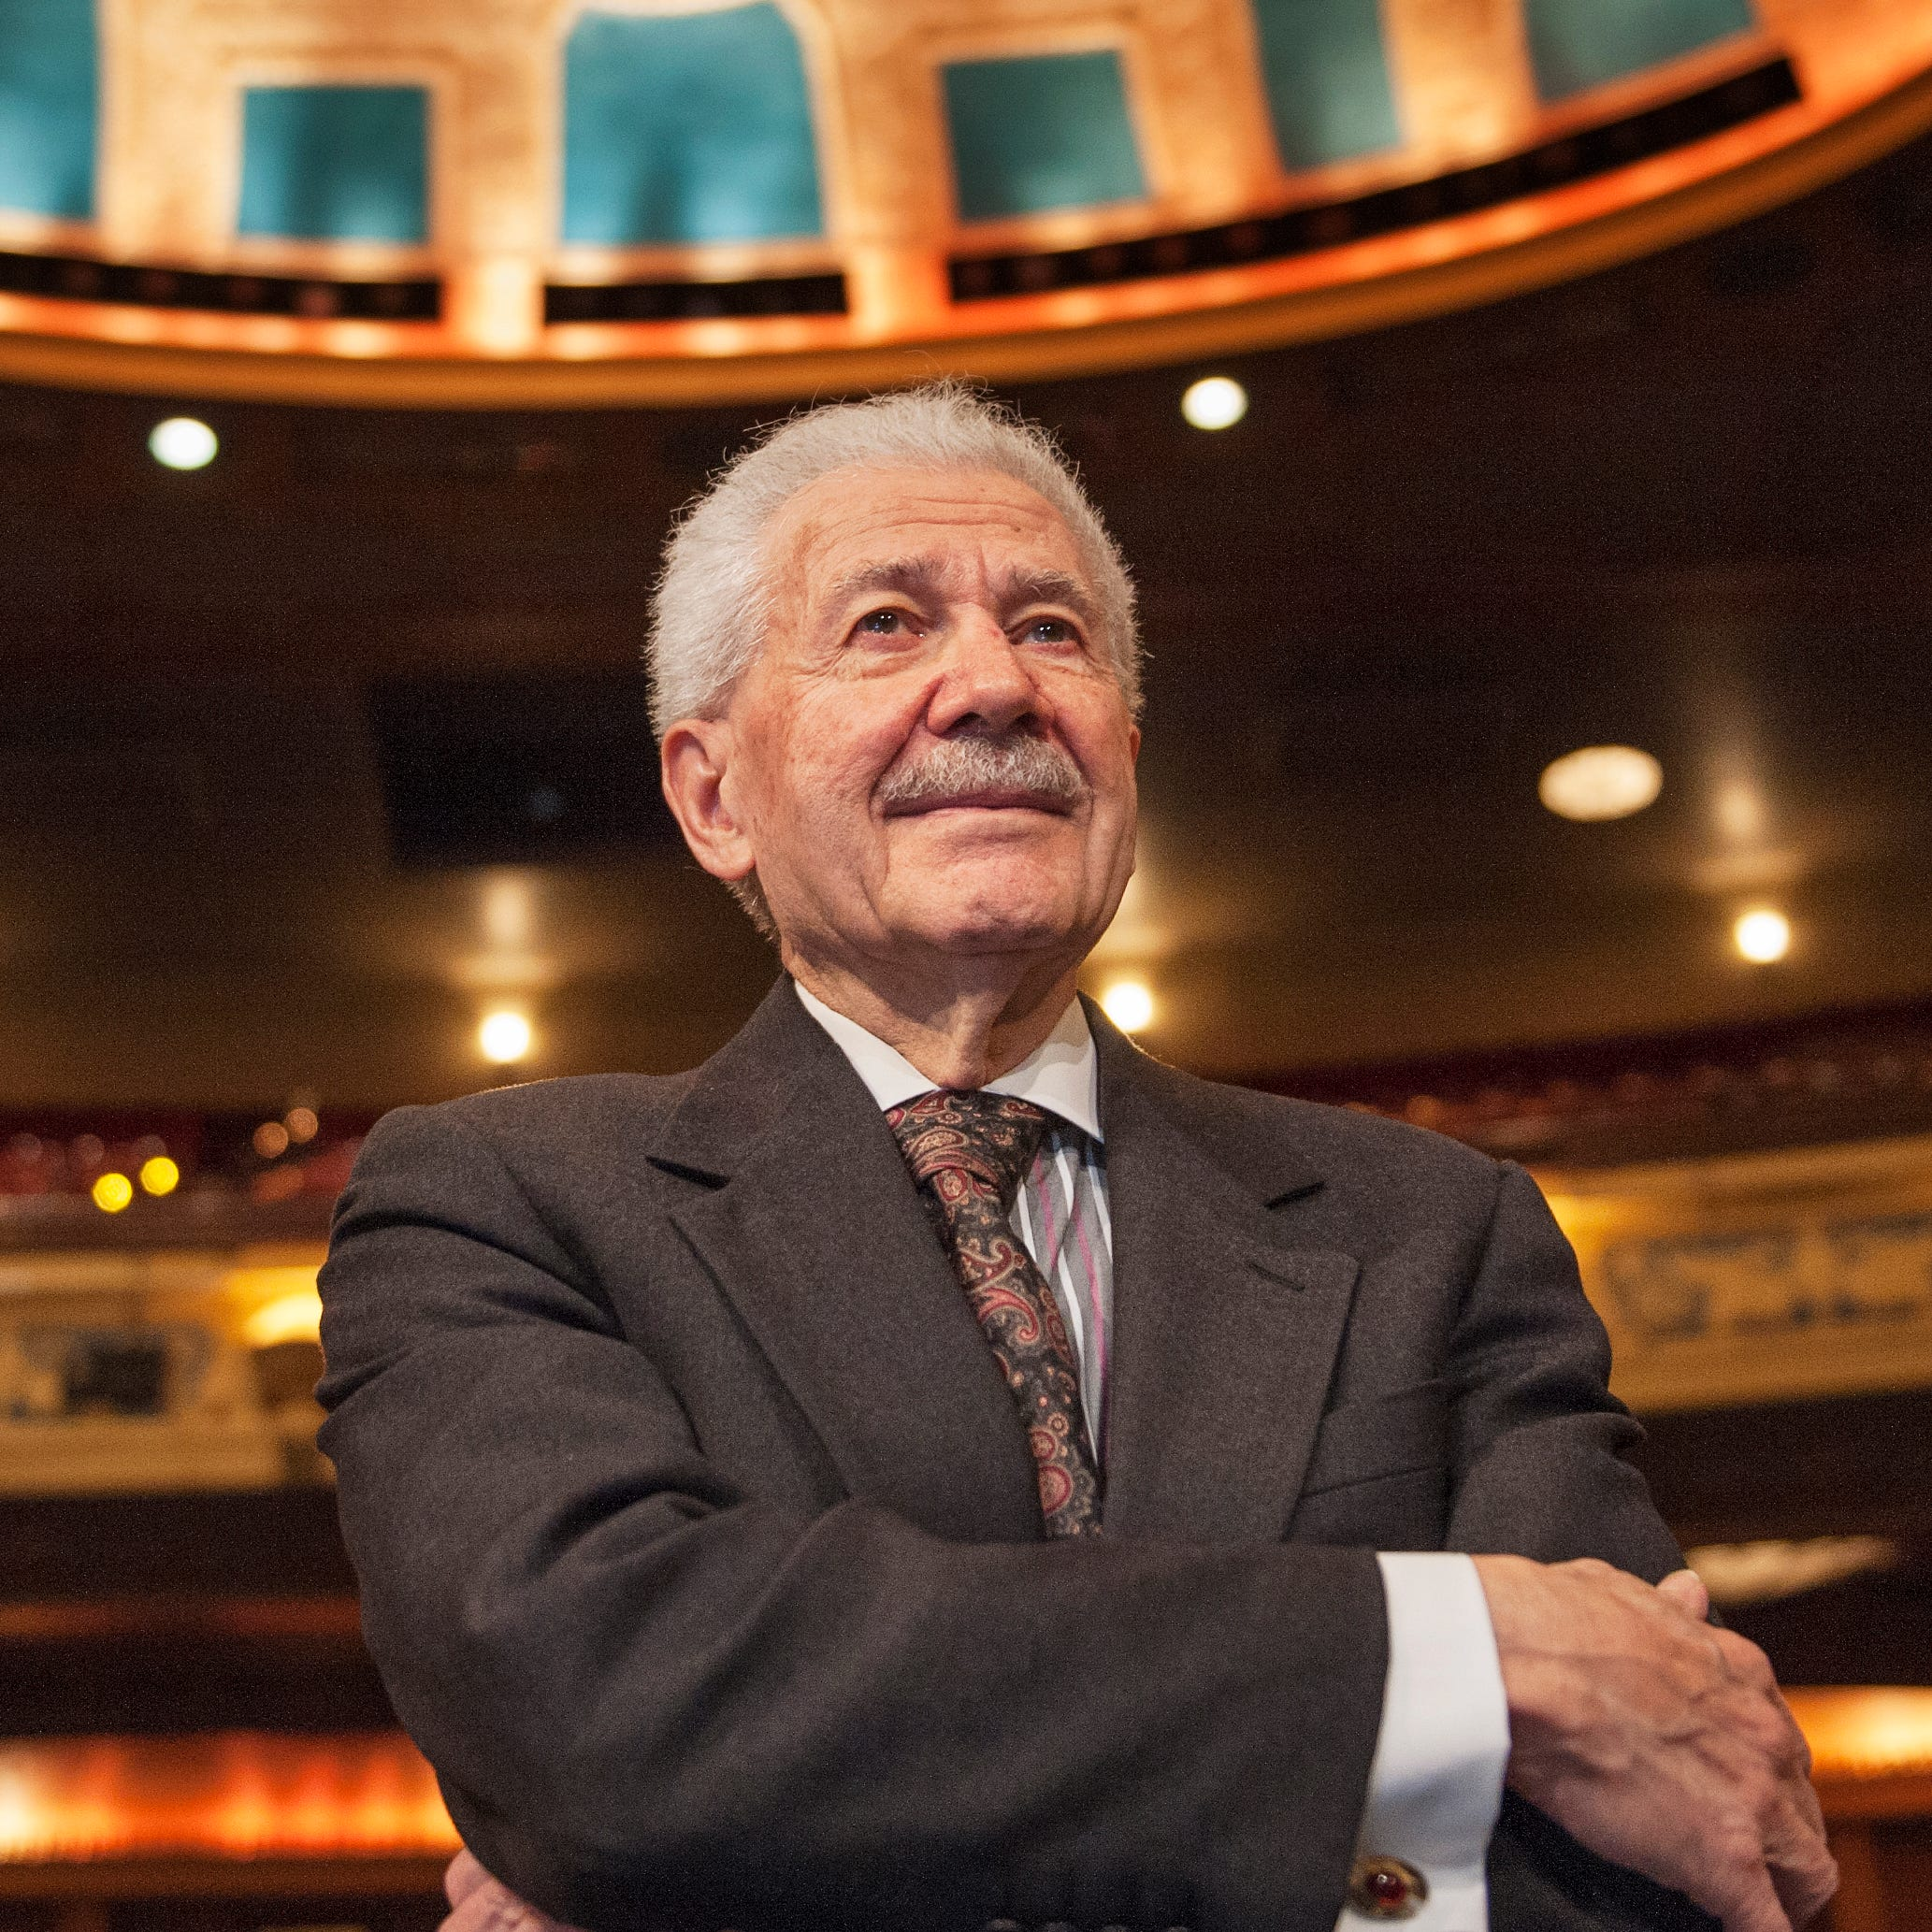 David DiChiera, a cultural visionary who 'loved opera and loved Detroit'